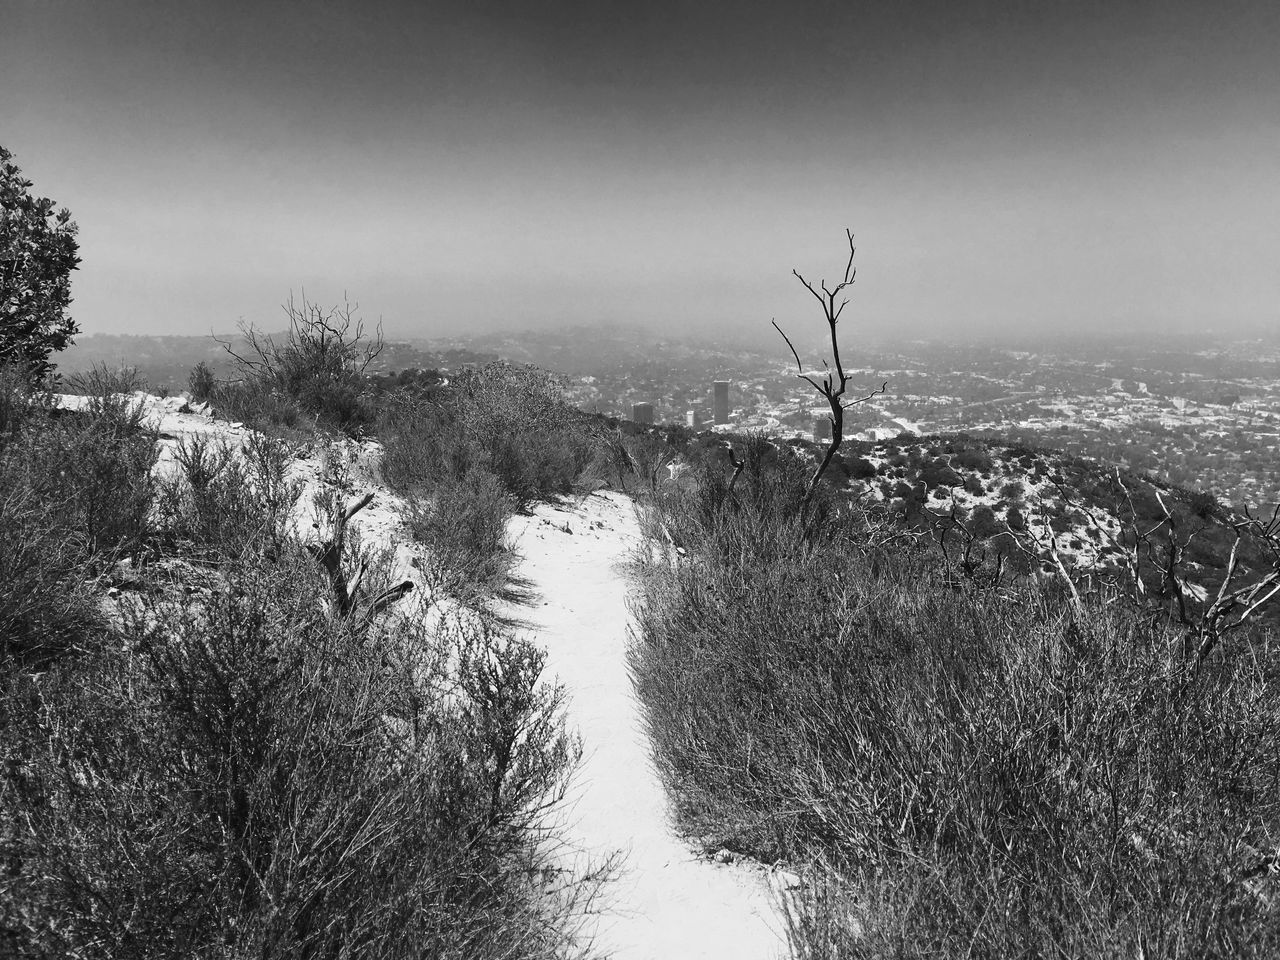 Hollywood Hills Beauty In Nature California Day Film Noir Growth Hiking Hollywood Hills Los Ángeles Monochrome Nature No People Outdoors Plant Scenics Sky Tree Water